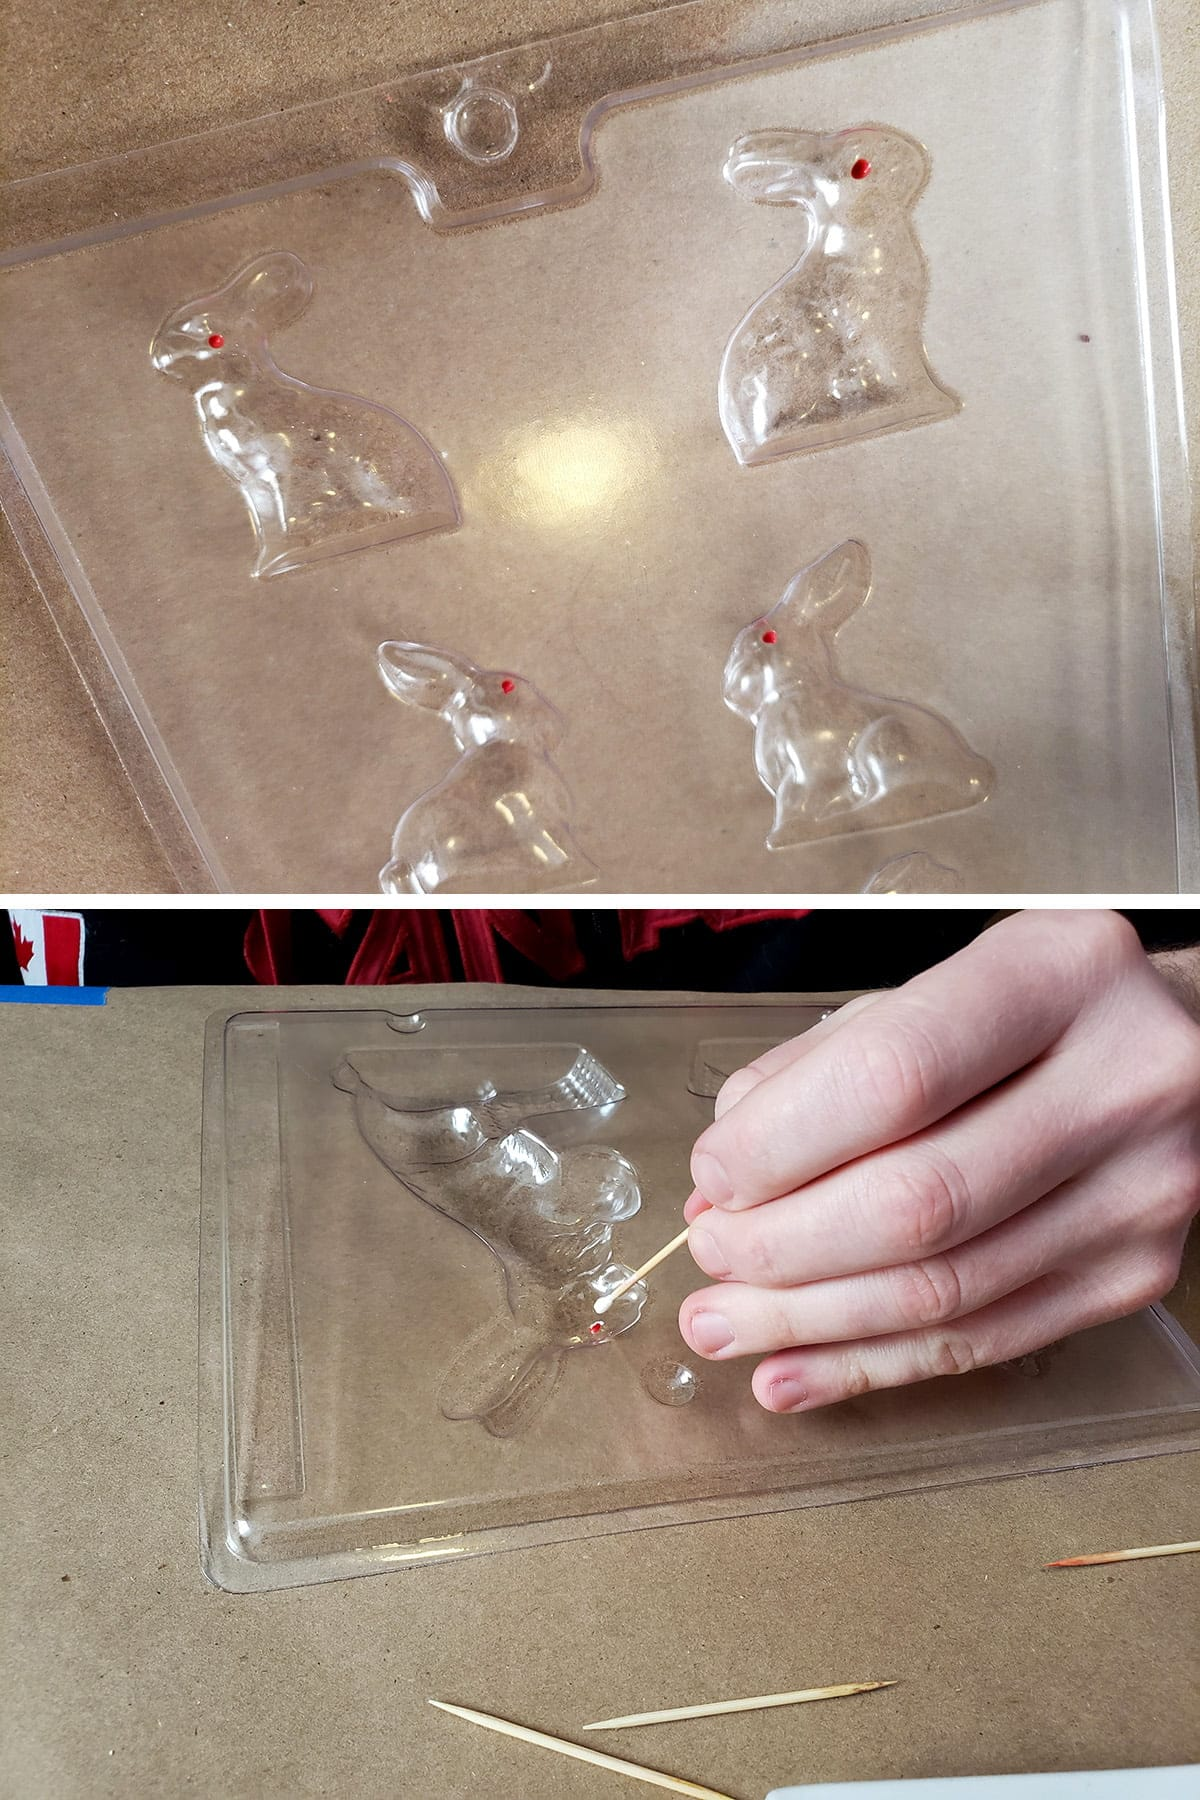 A hand uses a toothpick to apply melted candy to the details of a clear plastic bunny mold.